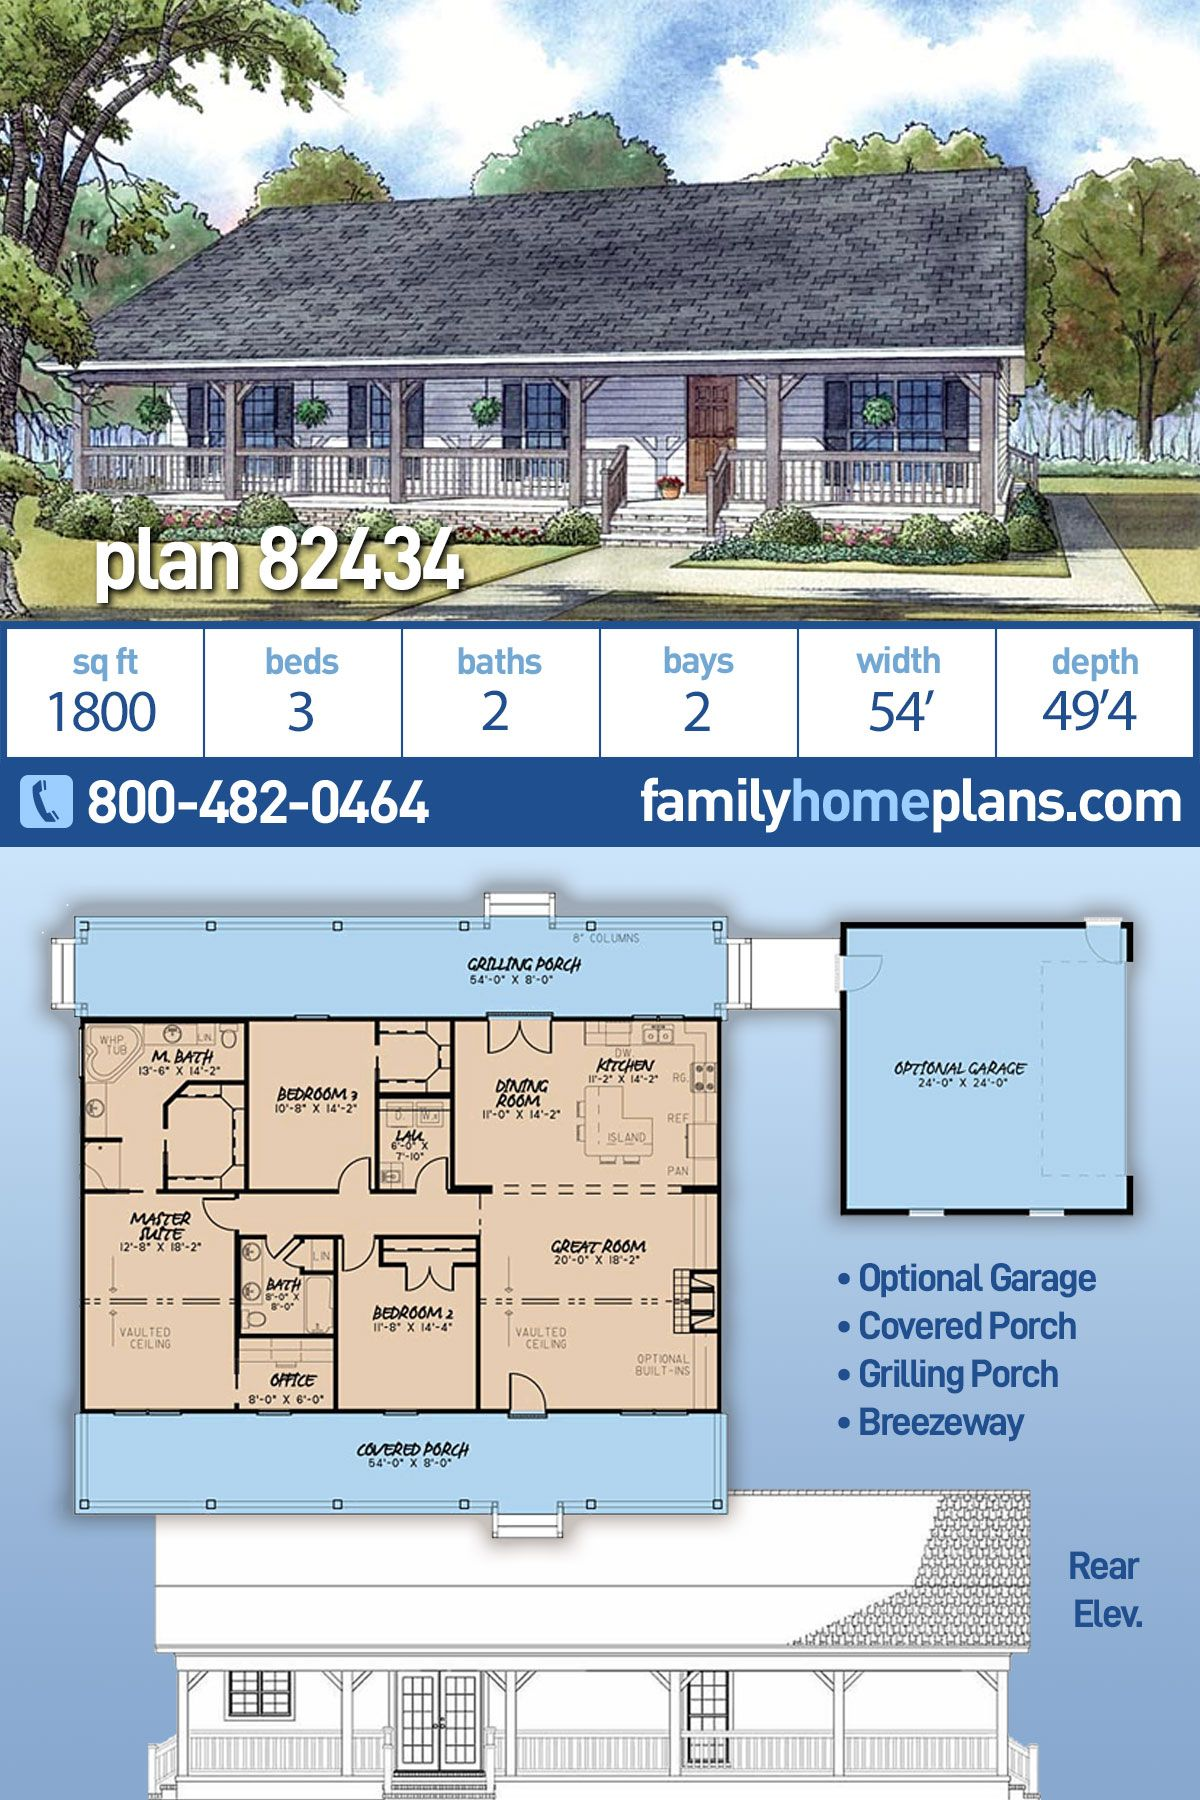 Ranch Style House Plan 82434 With 3 Bed 2 Bath 2 Car Garage Ranch Style House Plans Ranch House Plans Ranch Style Homes